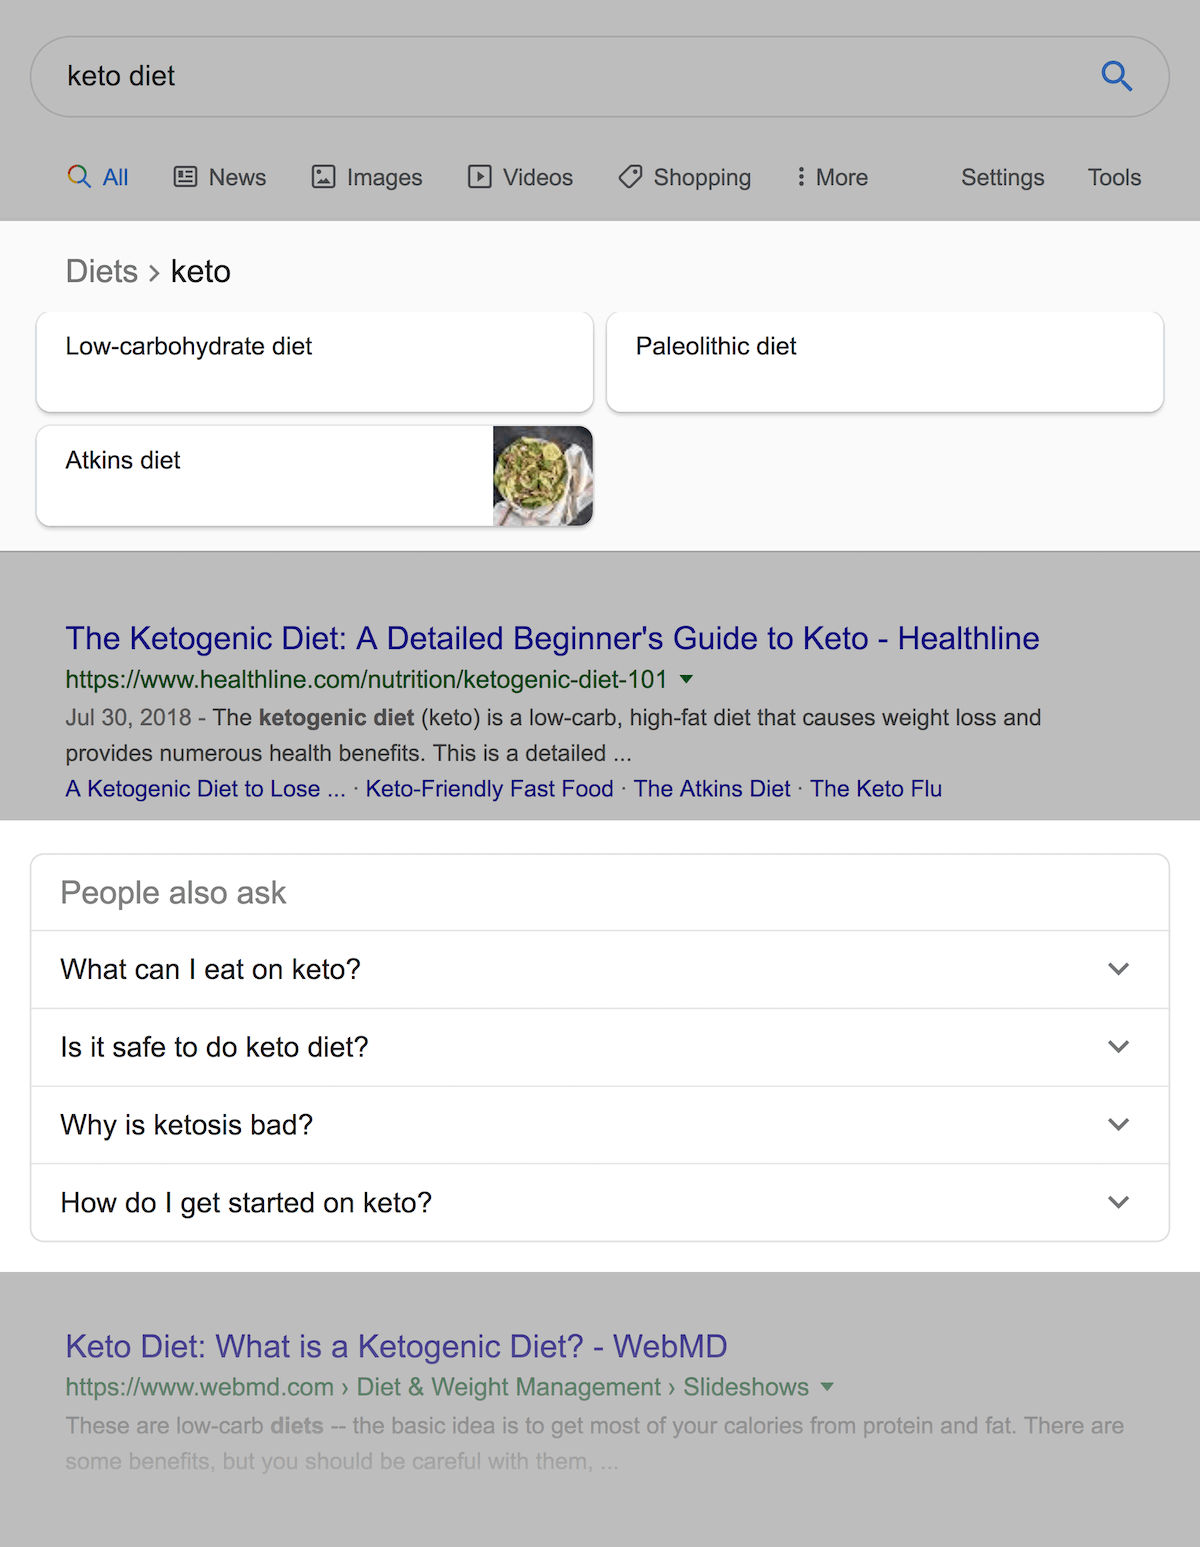 Google features that steal